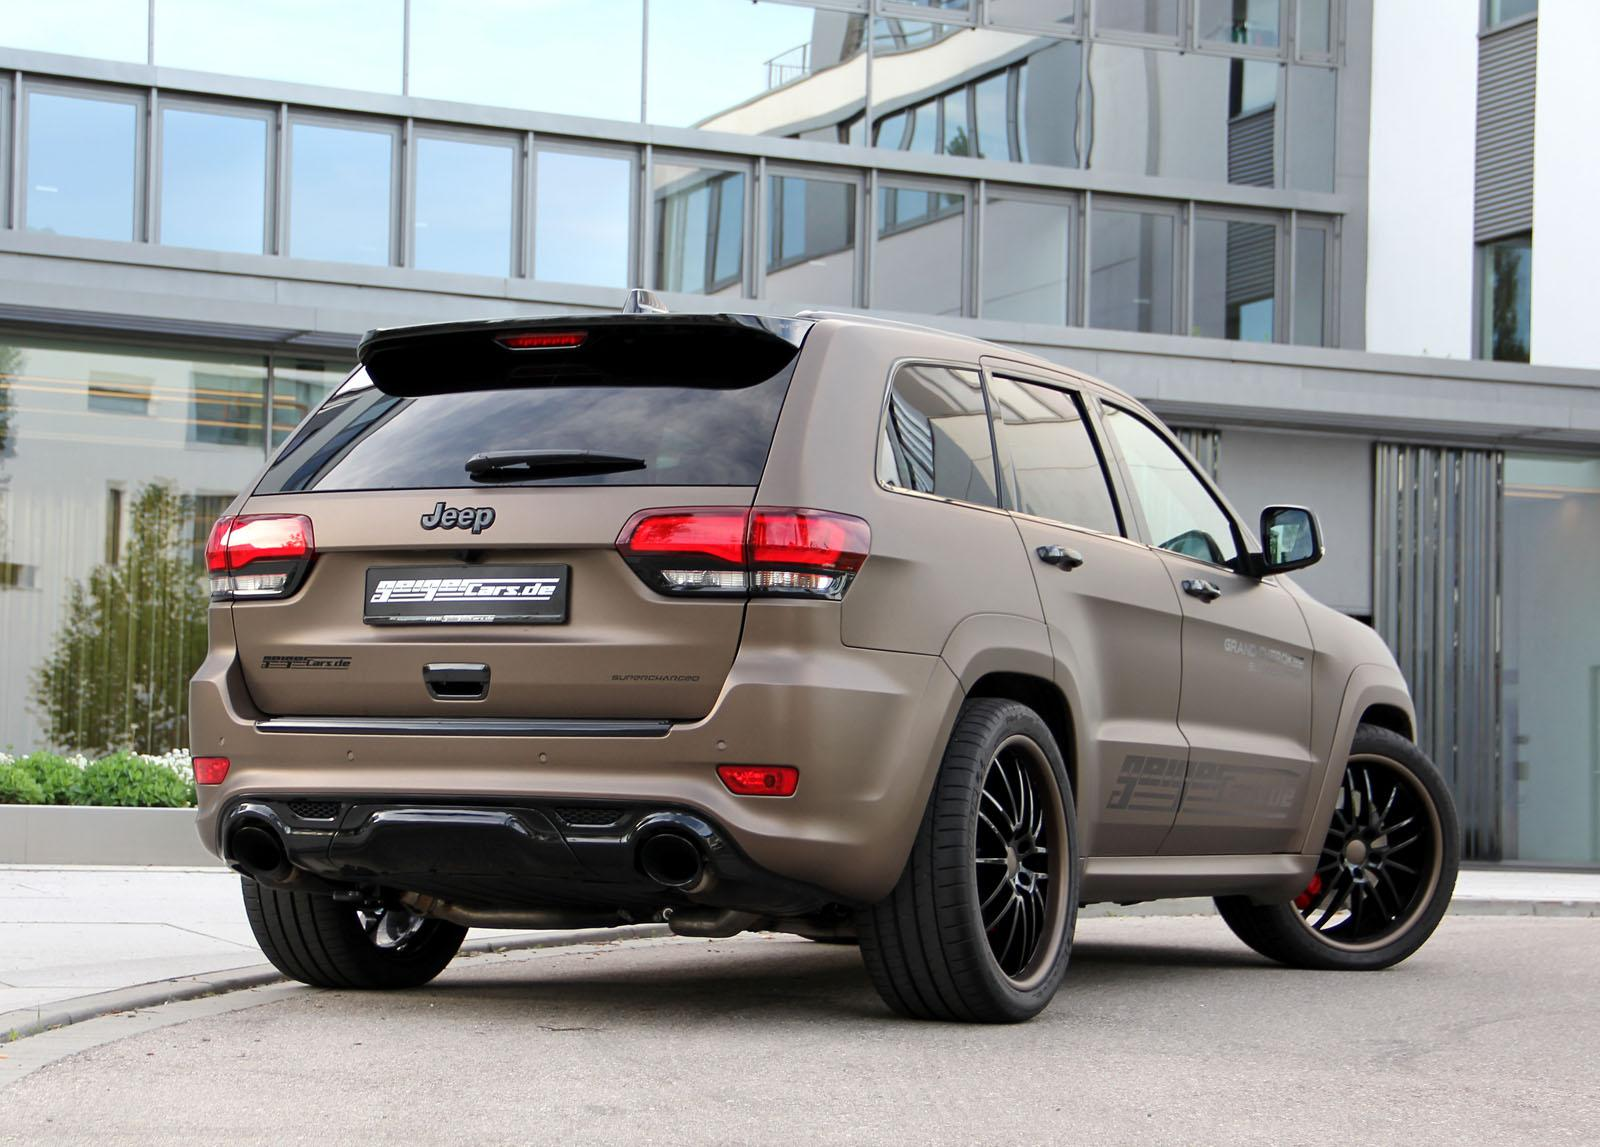 Exceptional ... Supercharged Jeep Grand Cherokee SRT From Geiger Cars ...